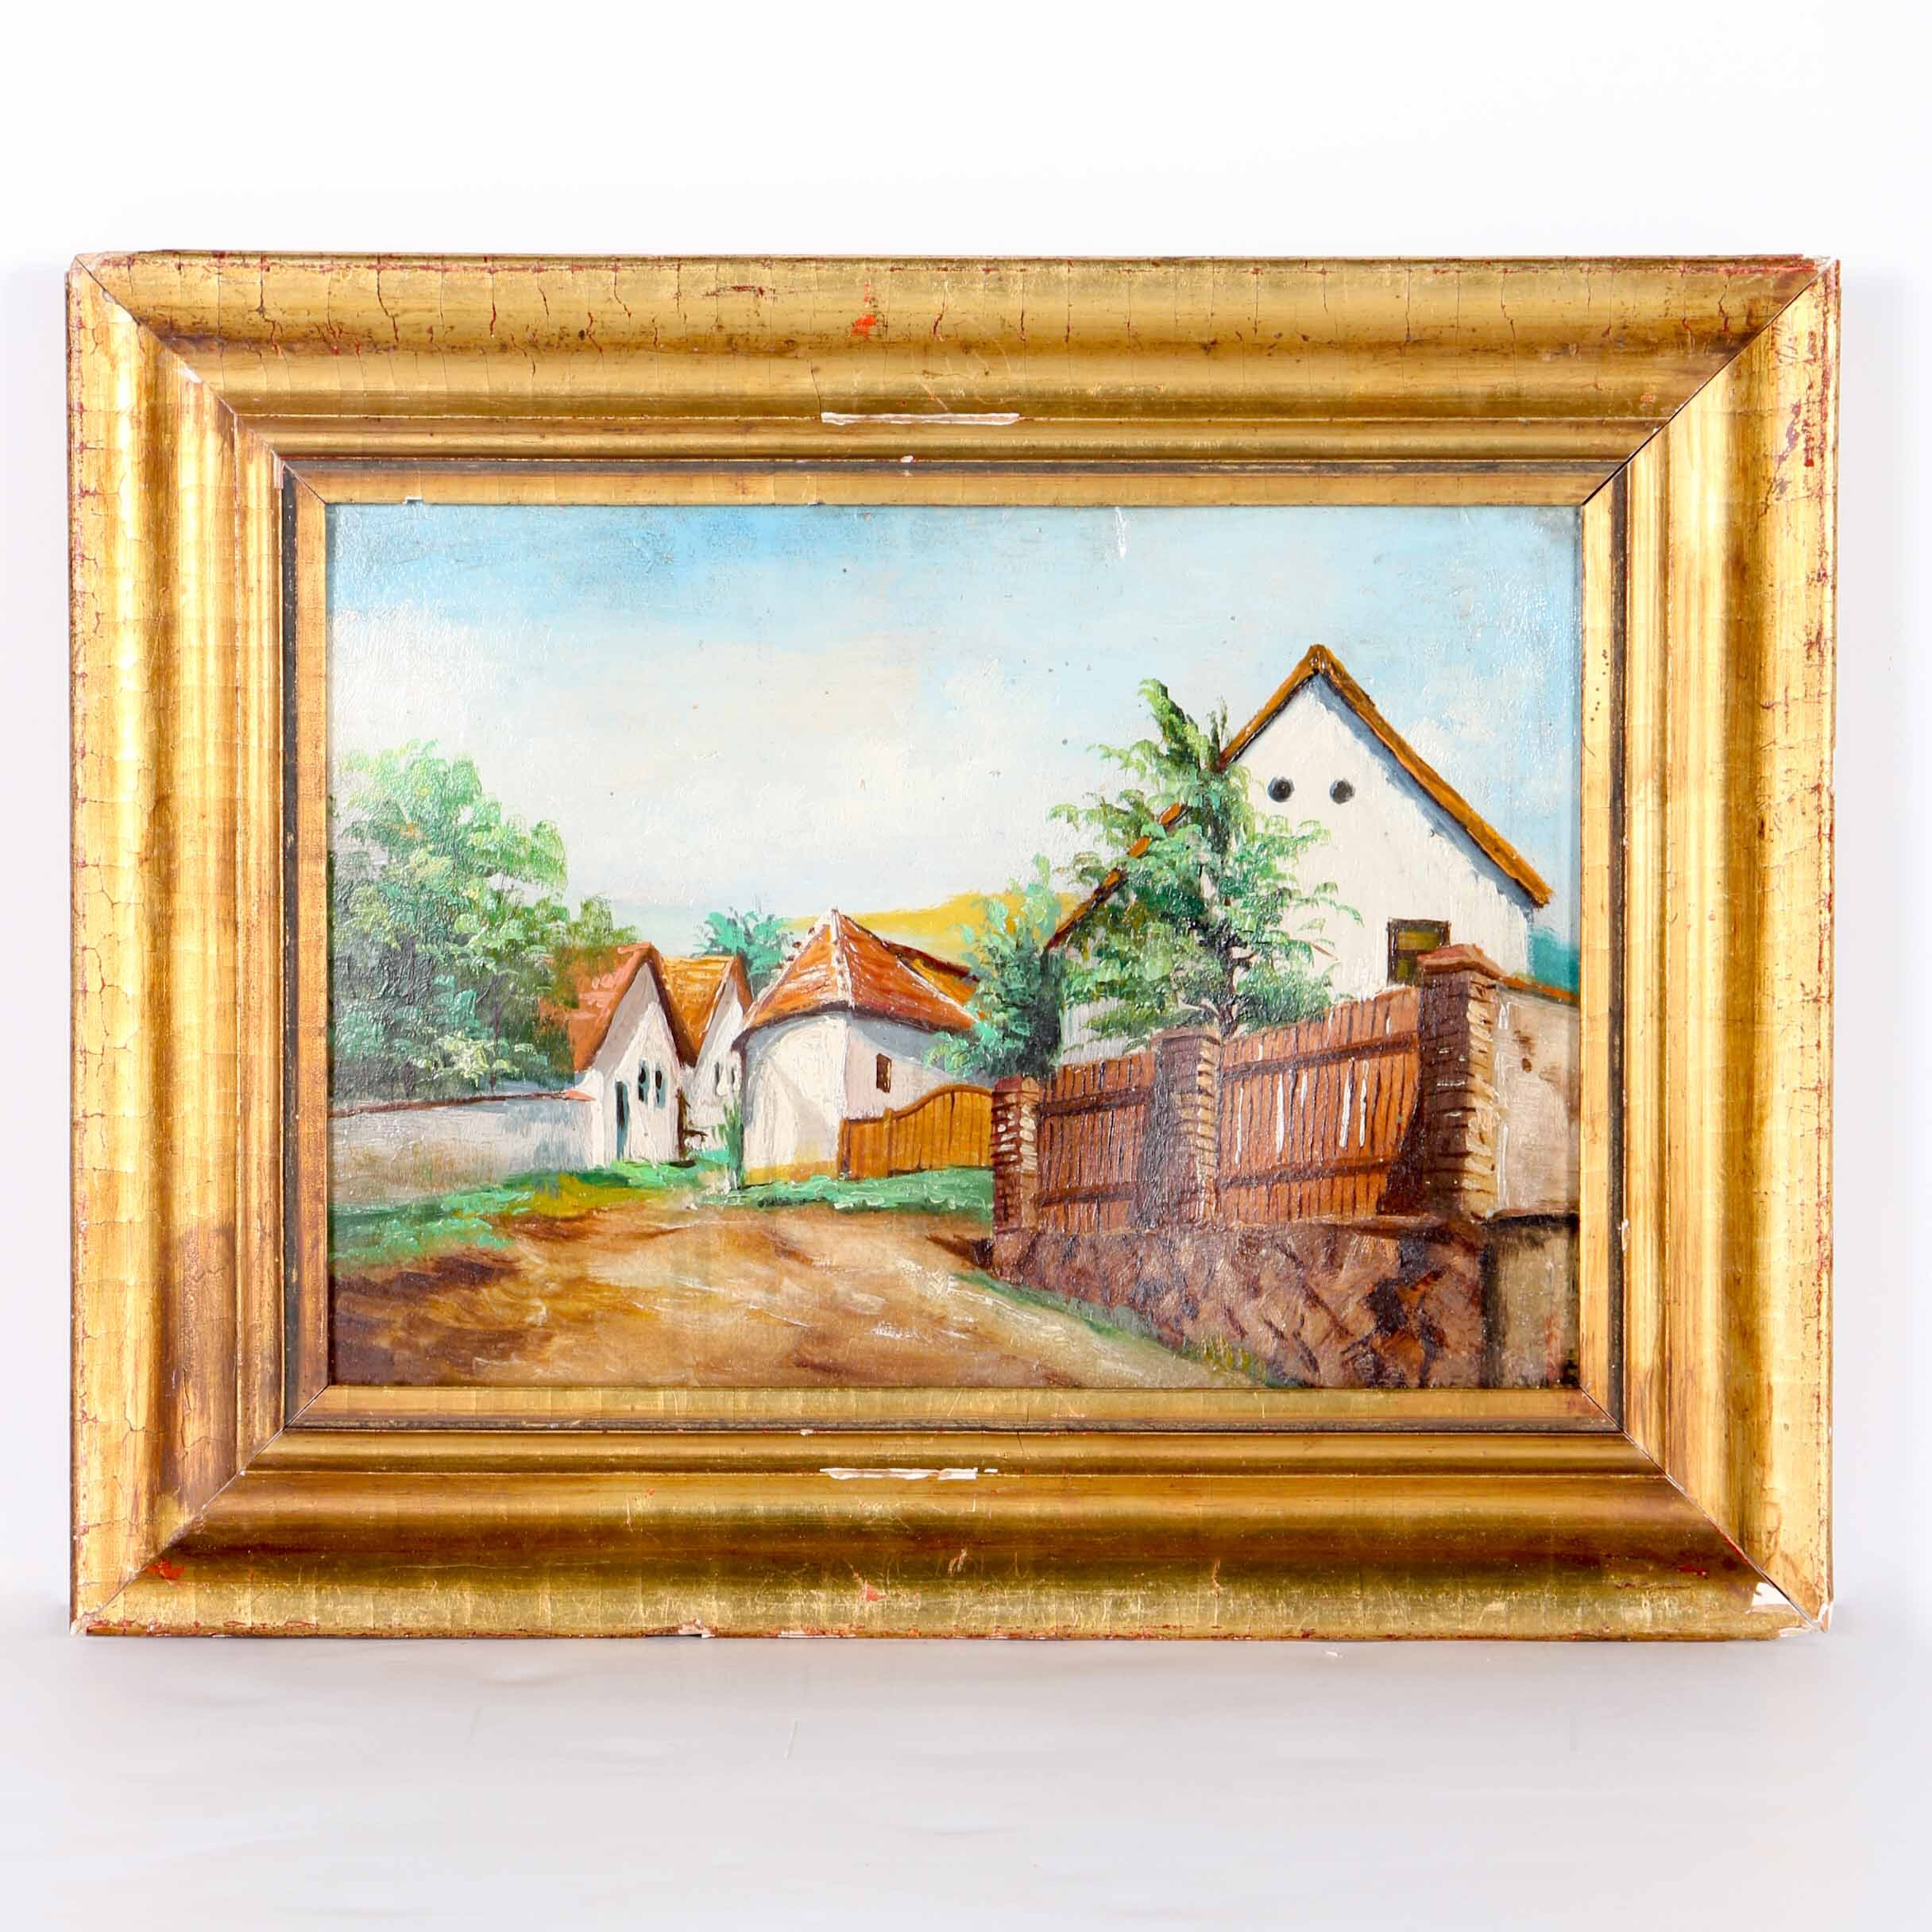 Adolphe Fenyes Original Oil Painting of a Fenced Town